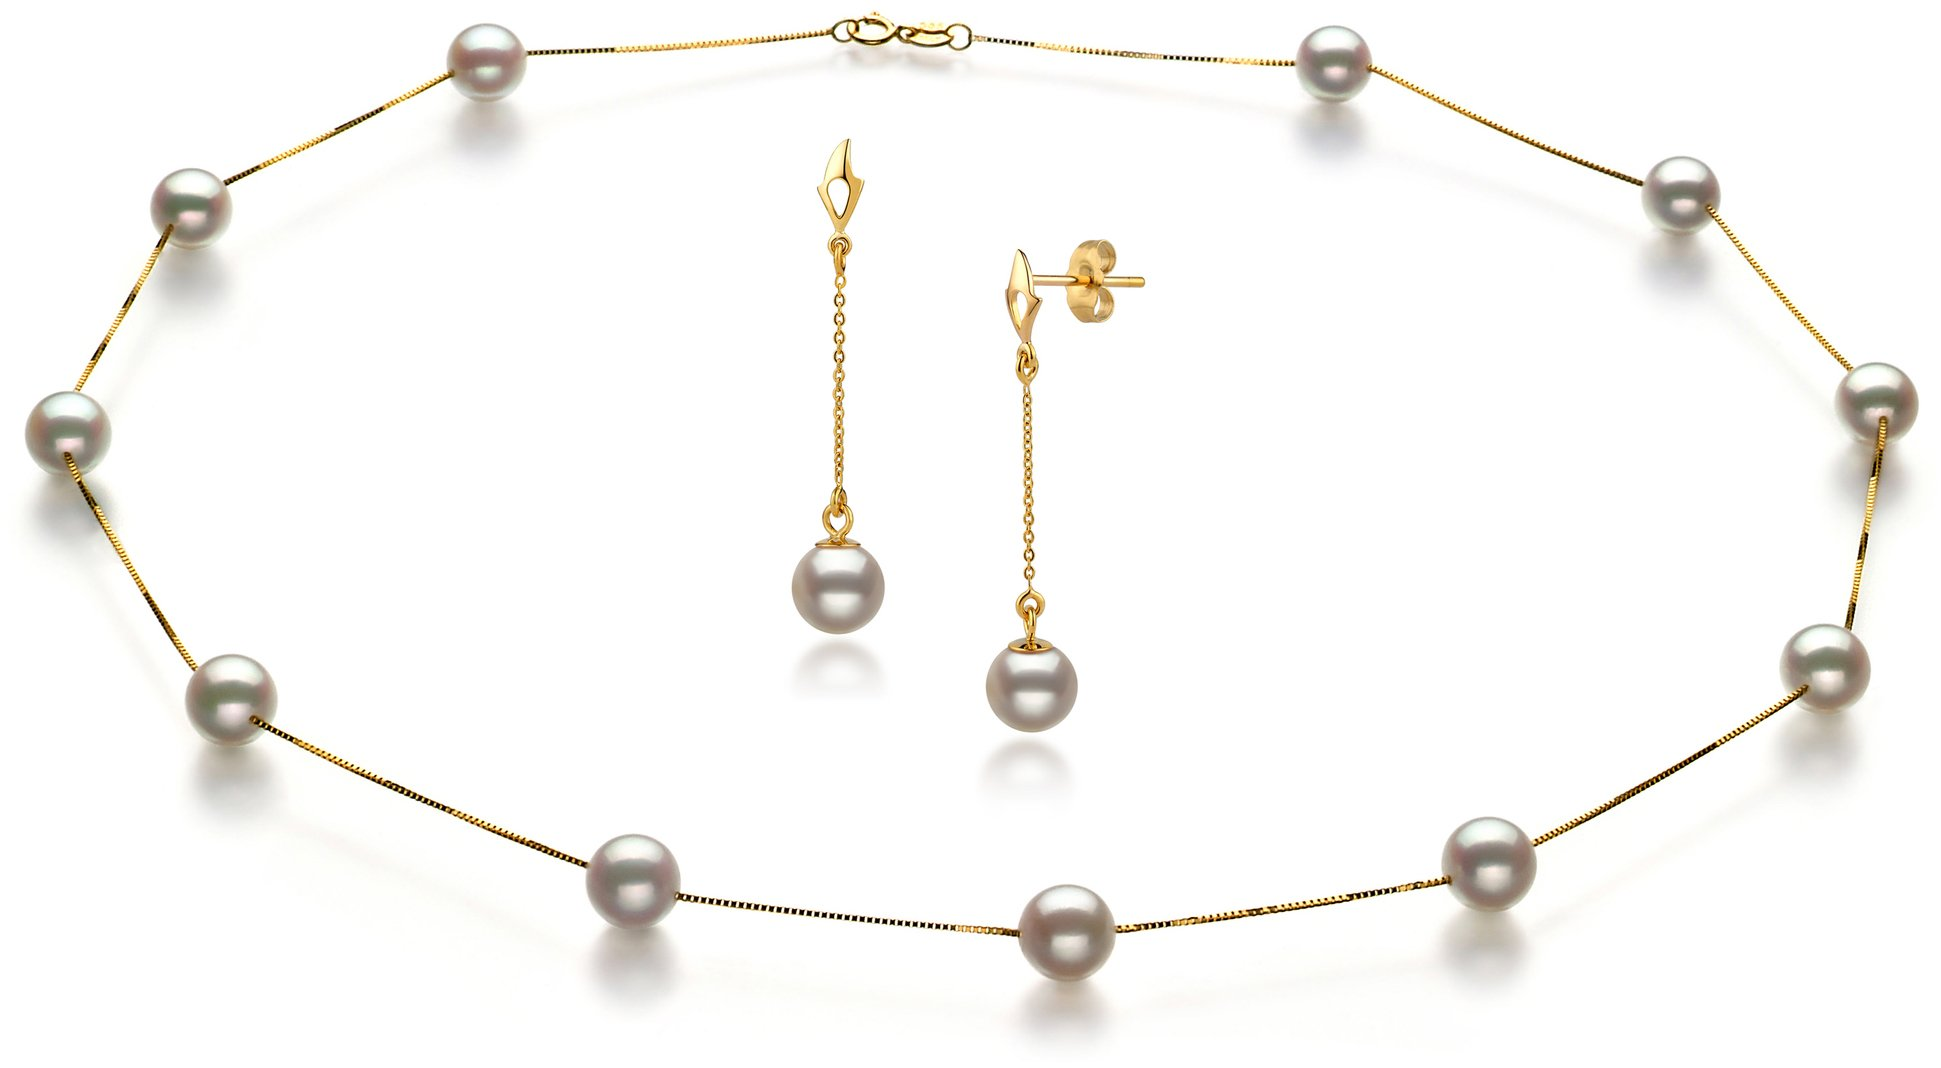 PearlsOnly - Tin Cup White 6-7mm AA Quality Japanese Akoya 14K Yellow Gold Cultured Pearl Set